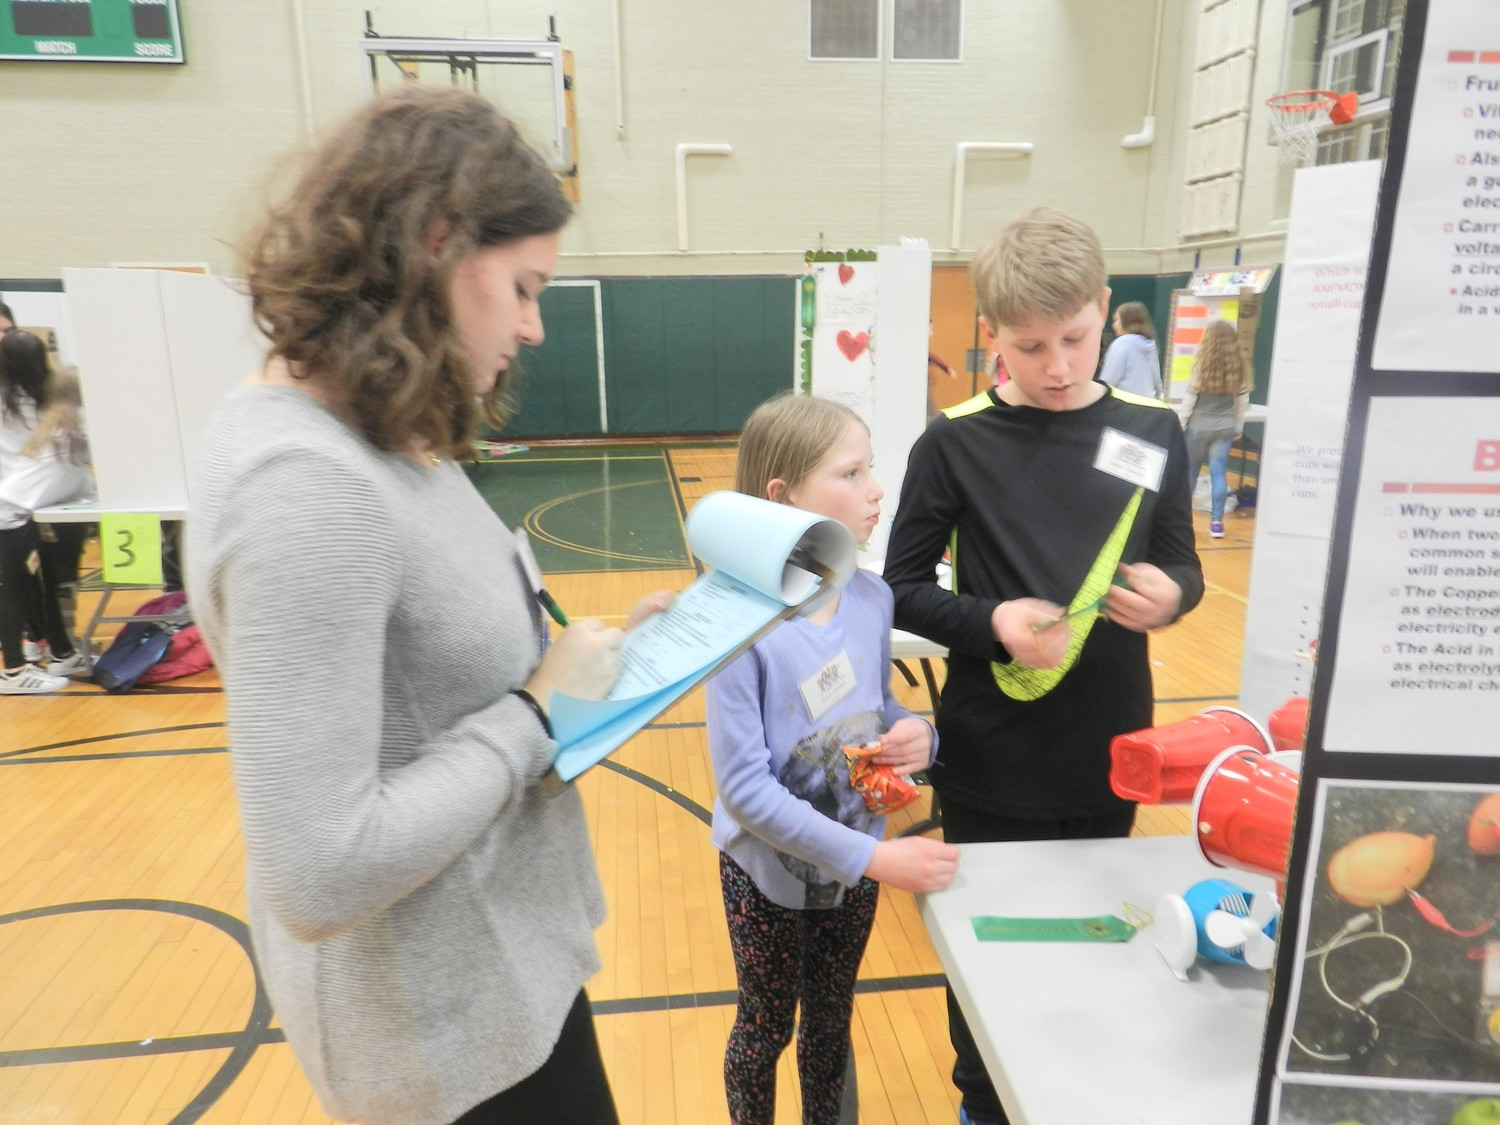 Members of Locust Valley High School's science research program judged the elementary school projects.